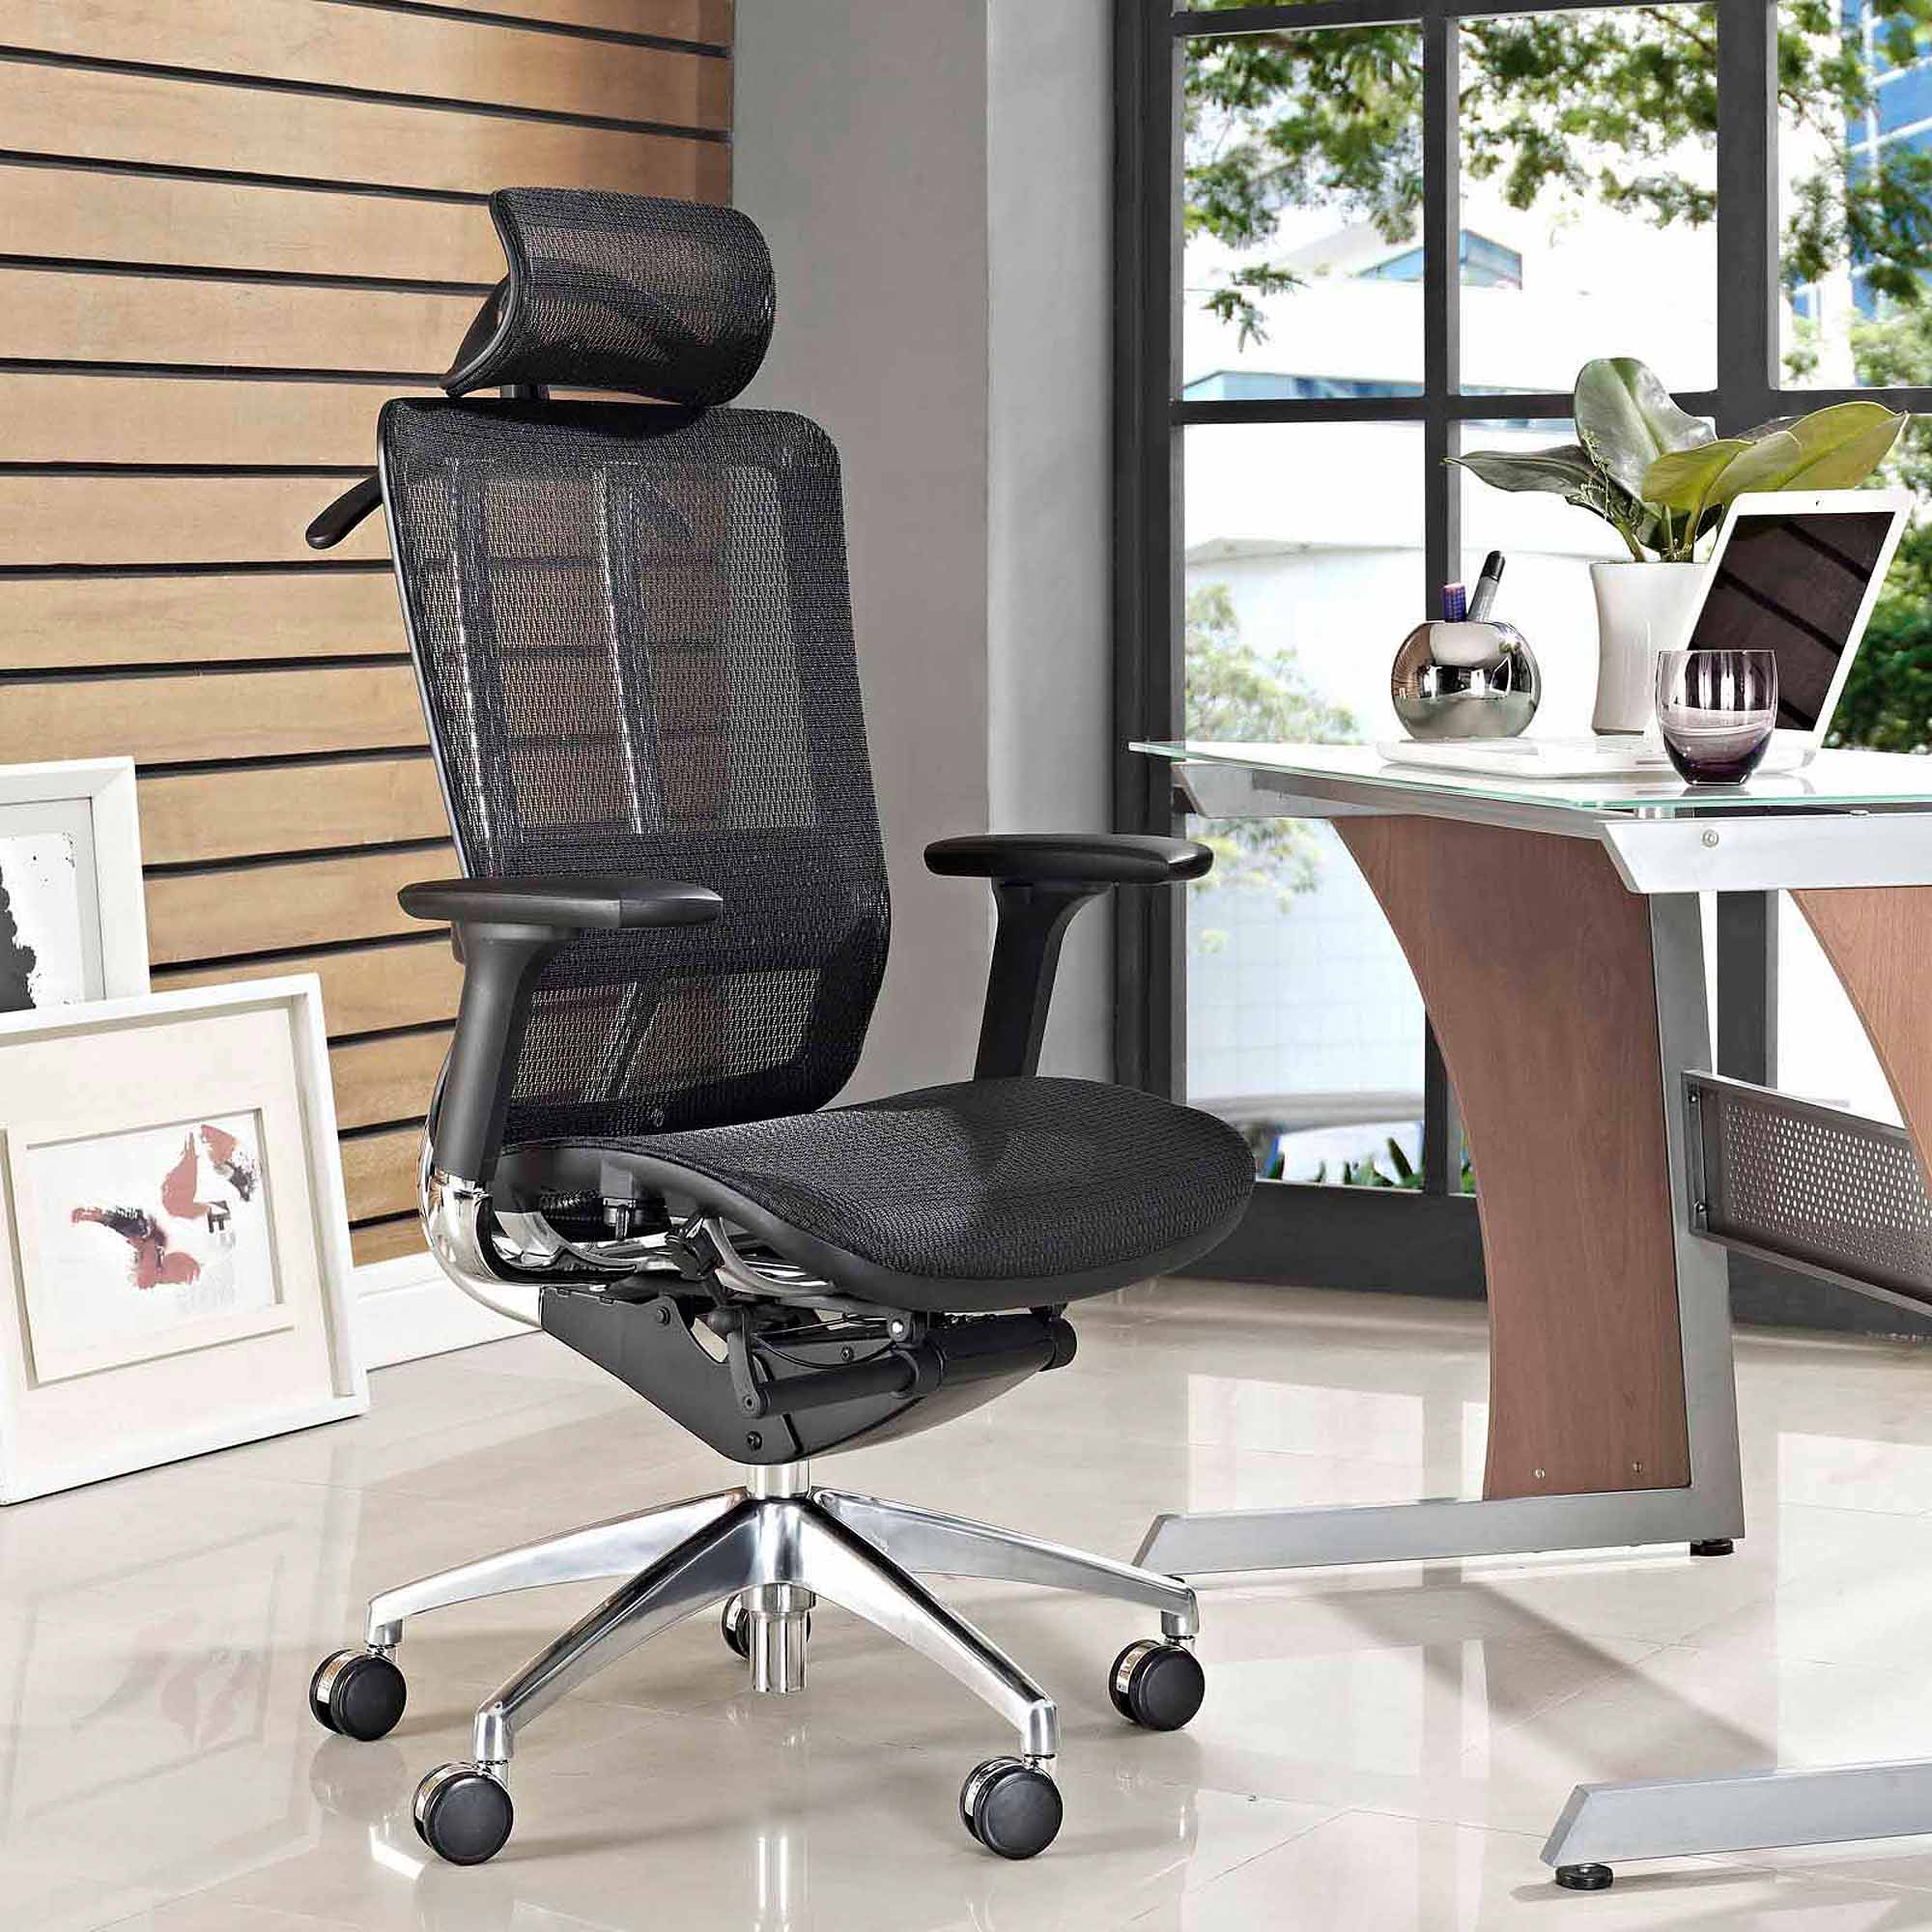 Modway Future Adjustable Back and Headrest Office Chair in Black